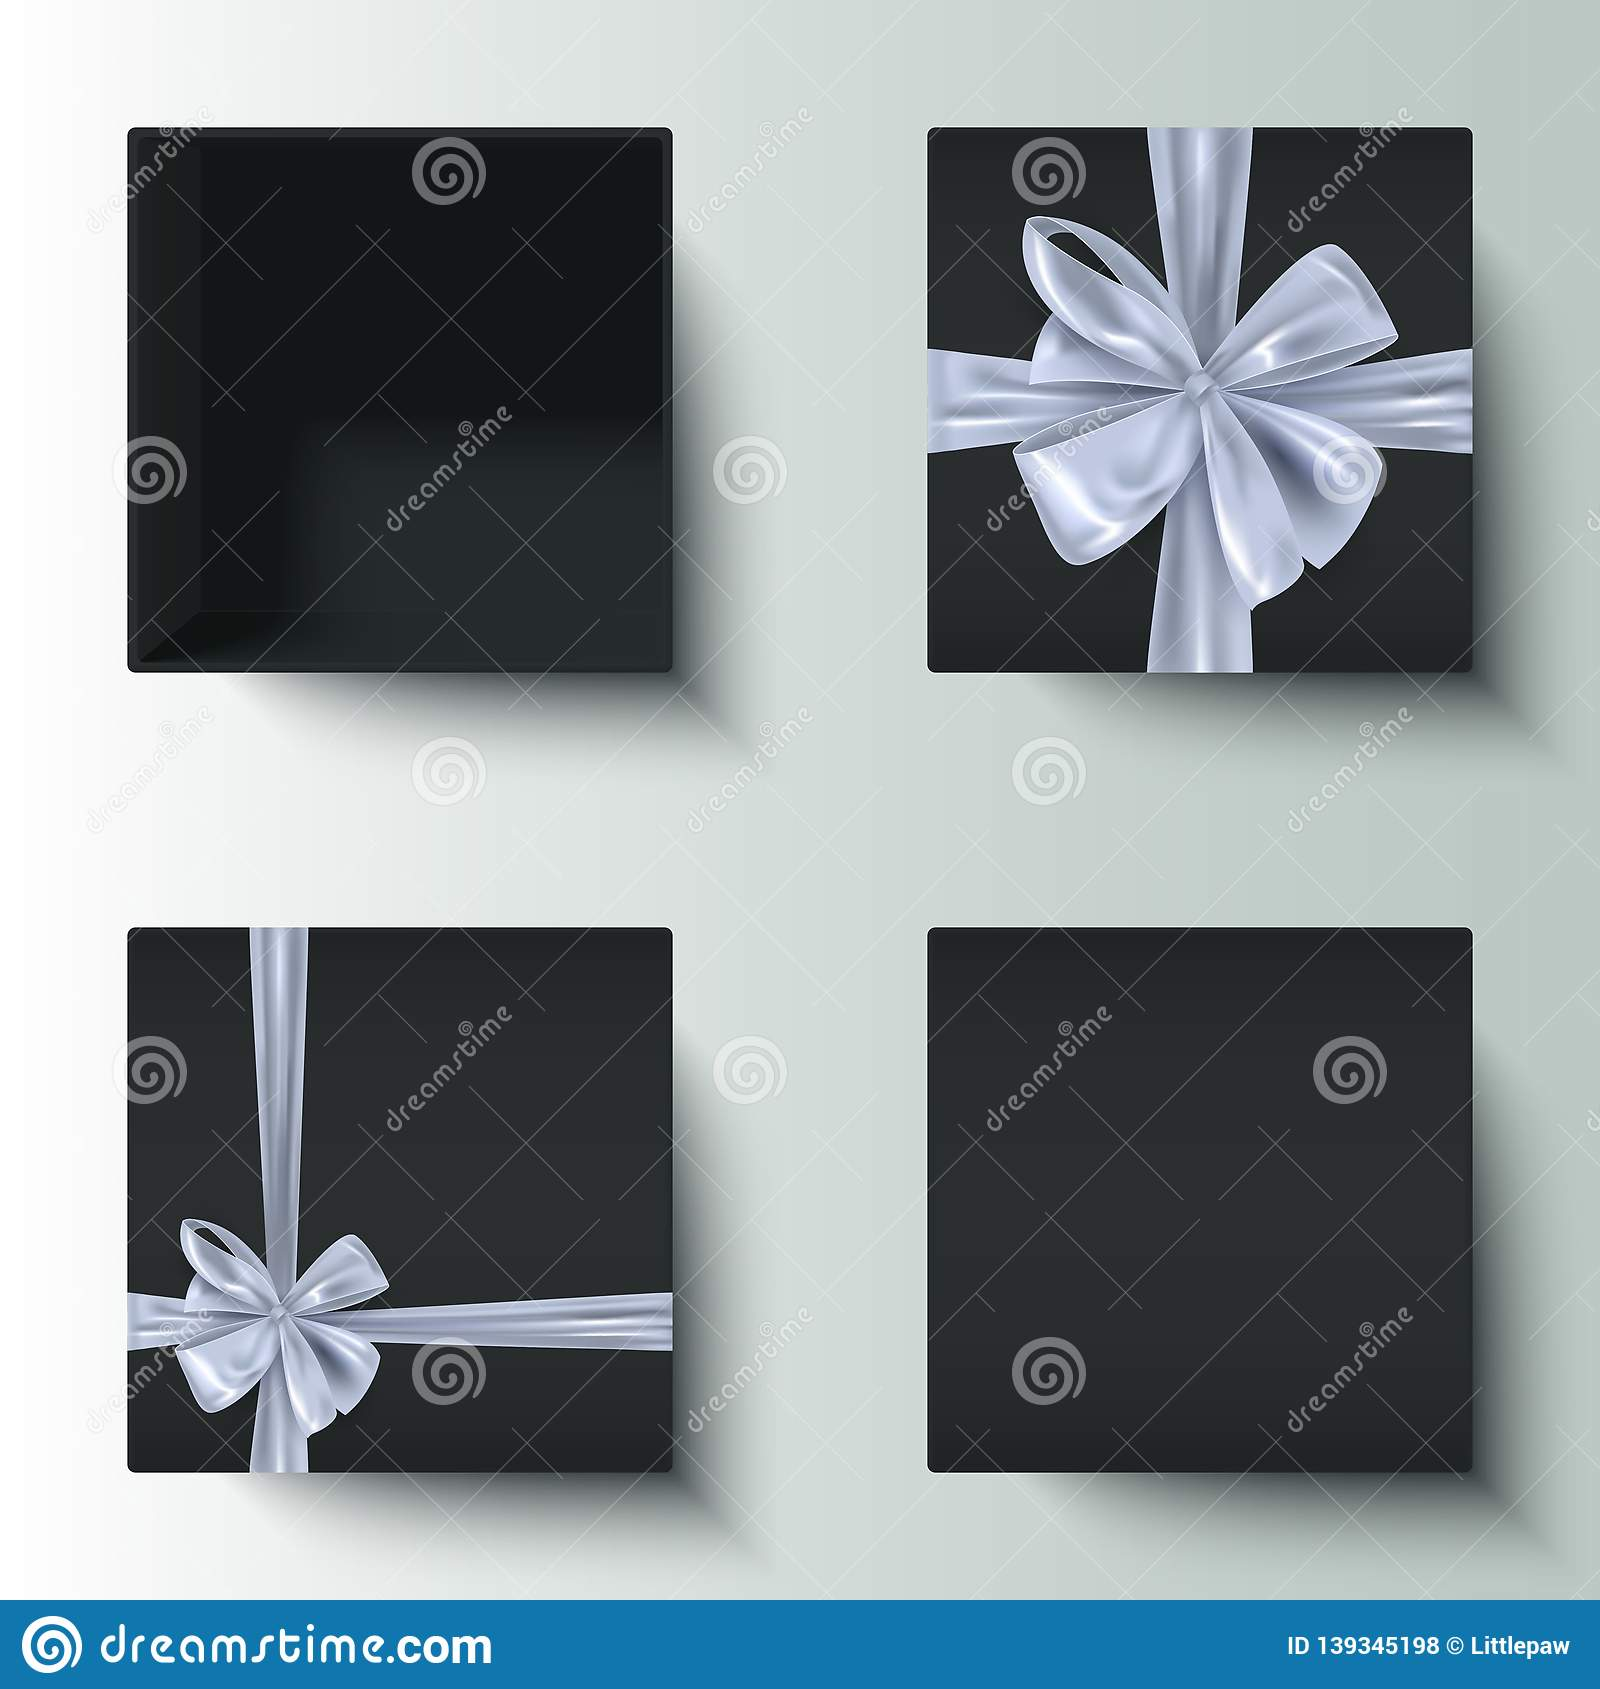 Black Gift Boxes Set Of Realistic Black Gift Boxes With Decorative Silver Bow Open